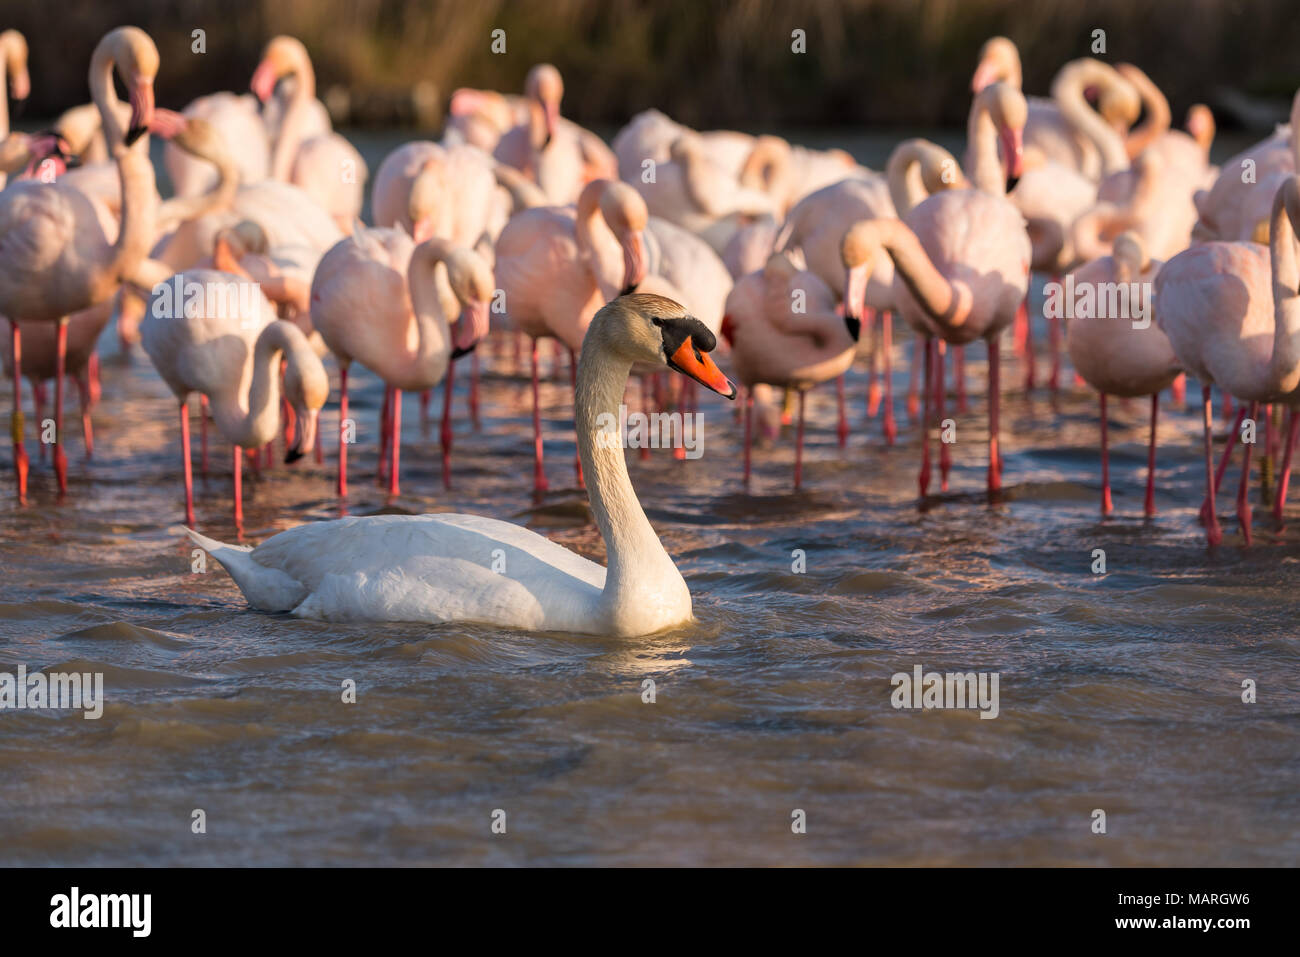 A swan and a flock of flamingos , Camargue, France - Stock Image